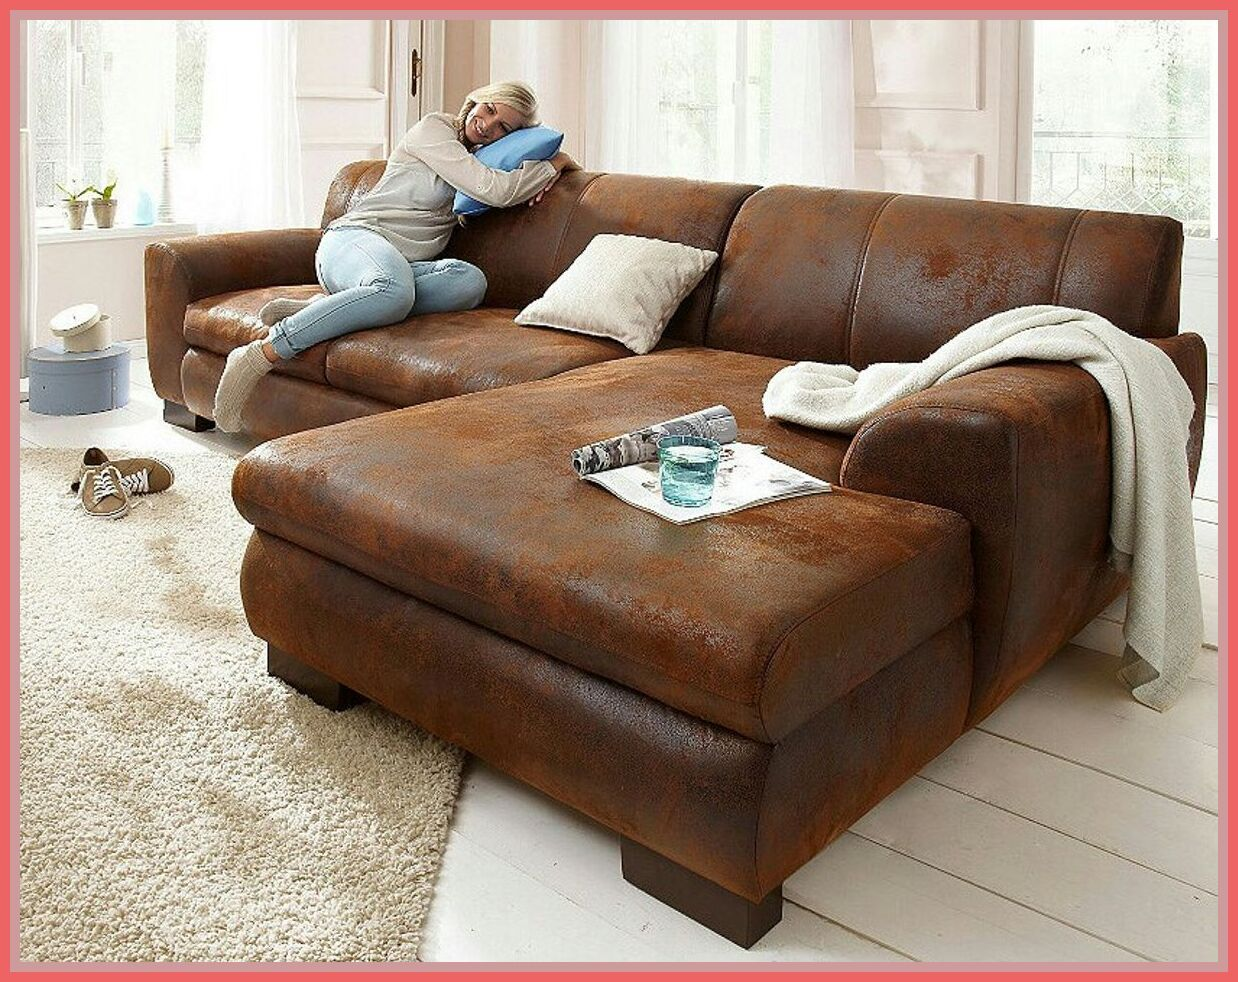 114 Reference Of Couch Braun 125 Cm In 2020 Couch Modern Couch Sofa